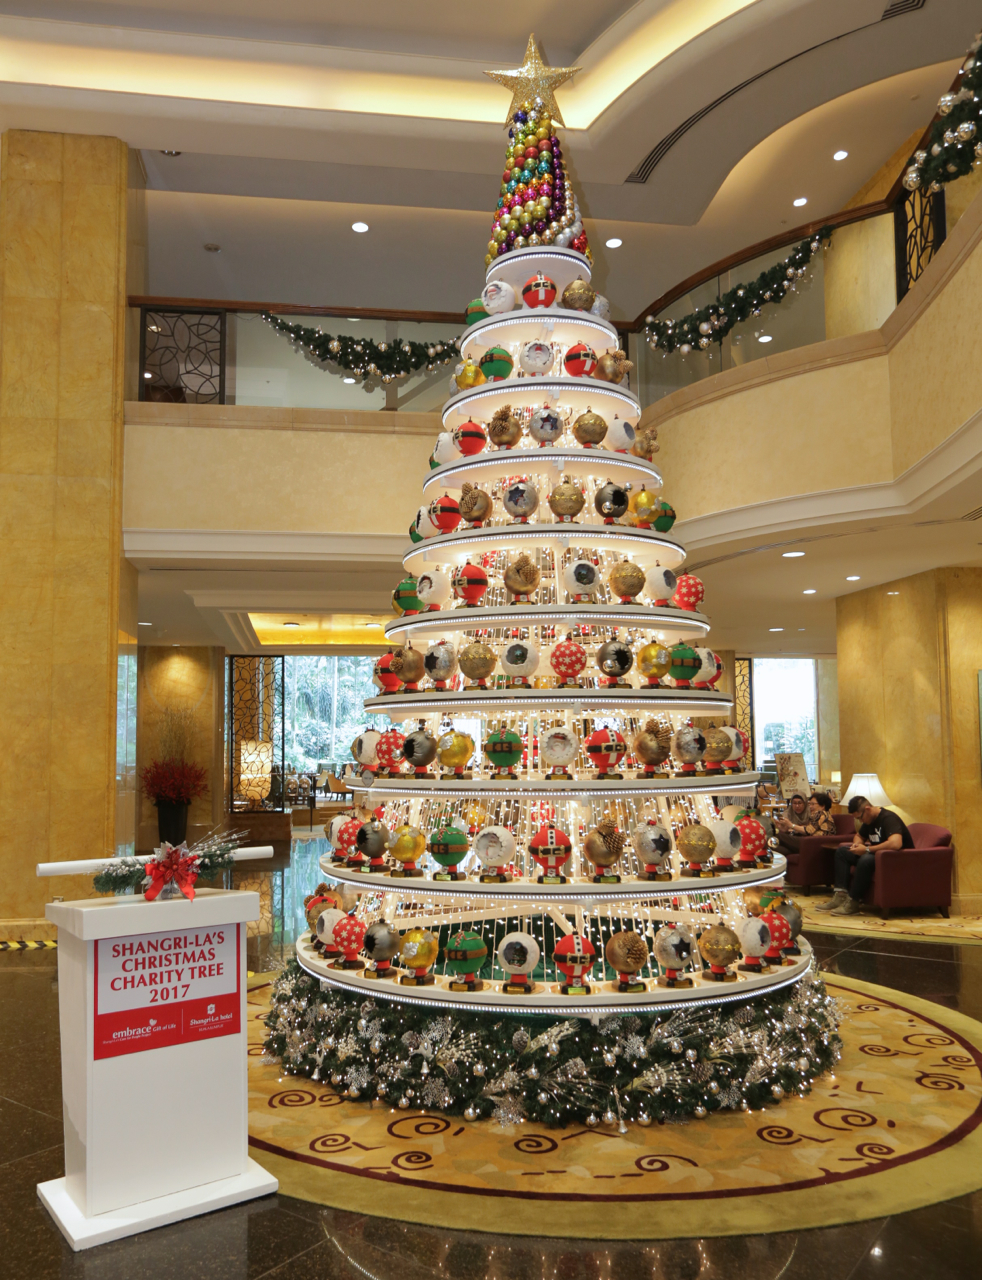 The Glittering Baubles of Life' Christmas Charity Tree 2017 in the main lobby of Shangri-La Hotel Kuala Lumpur